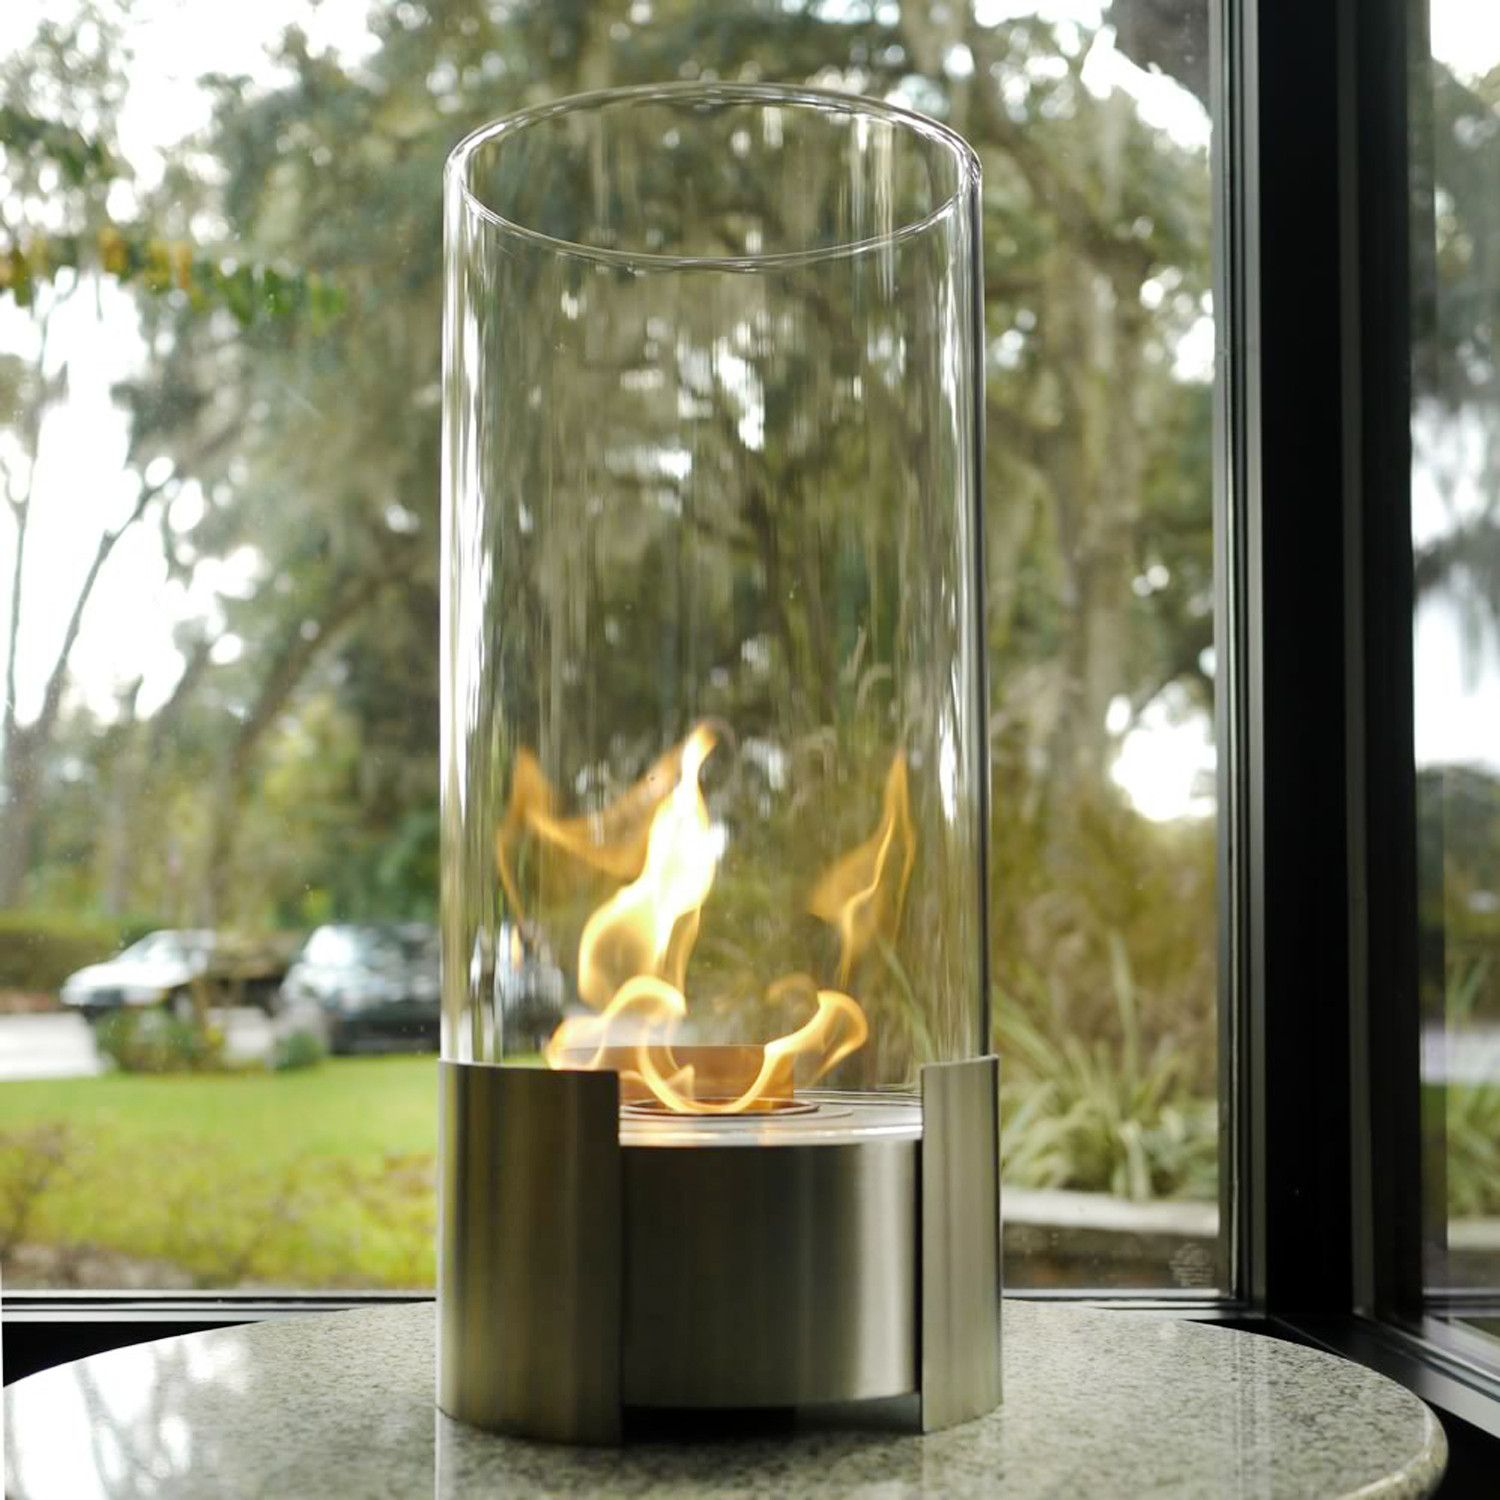 Portable stainless steel fireplace centerpiece.